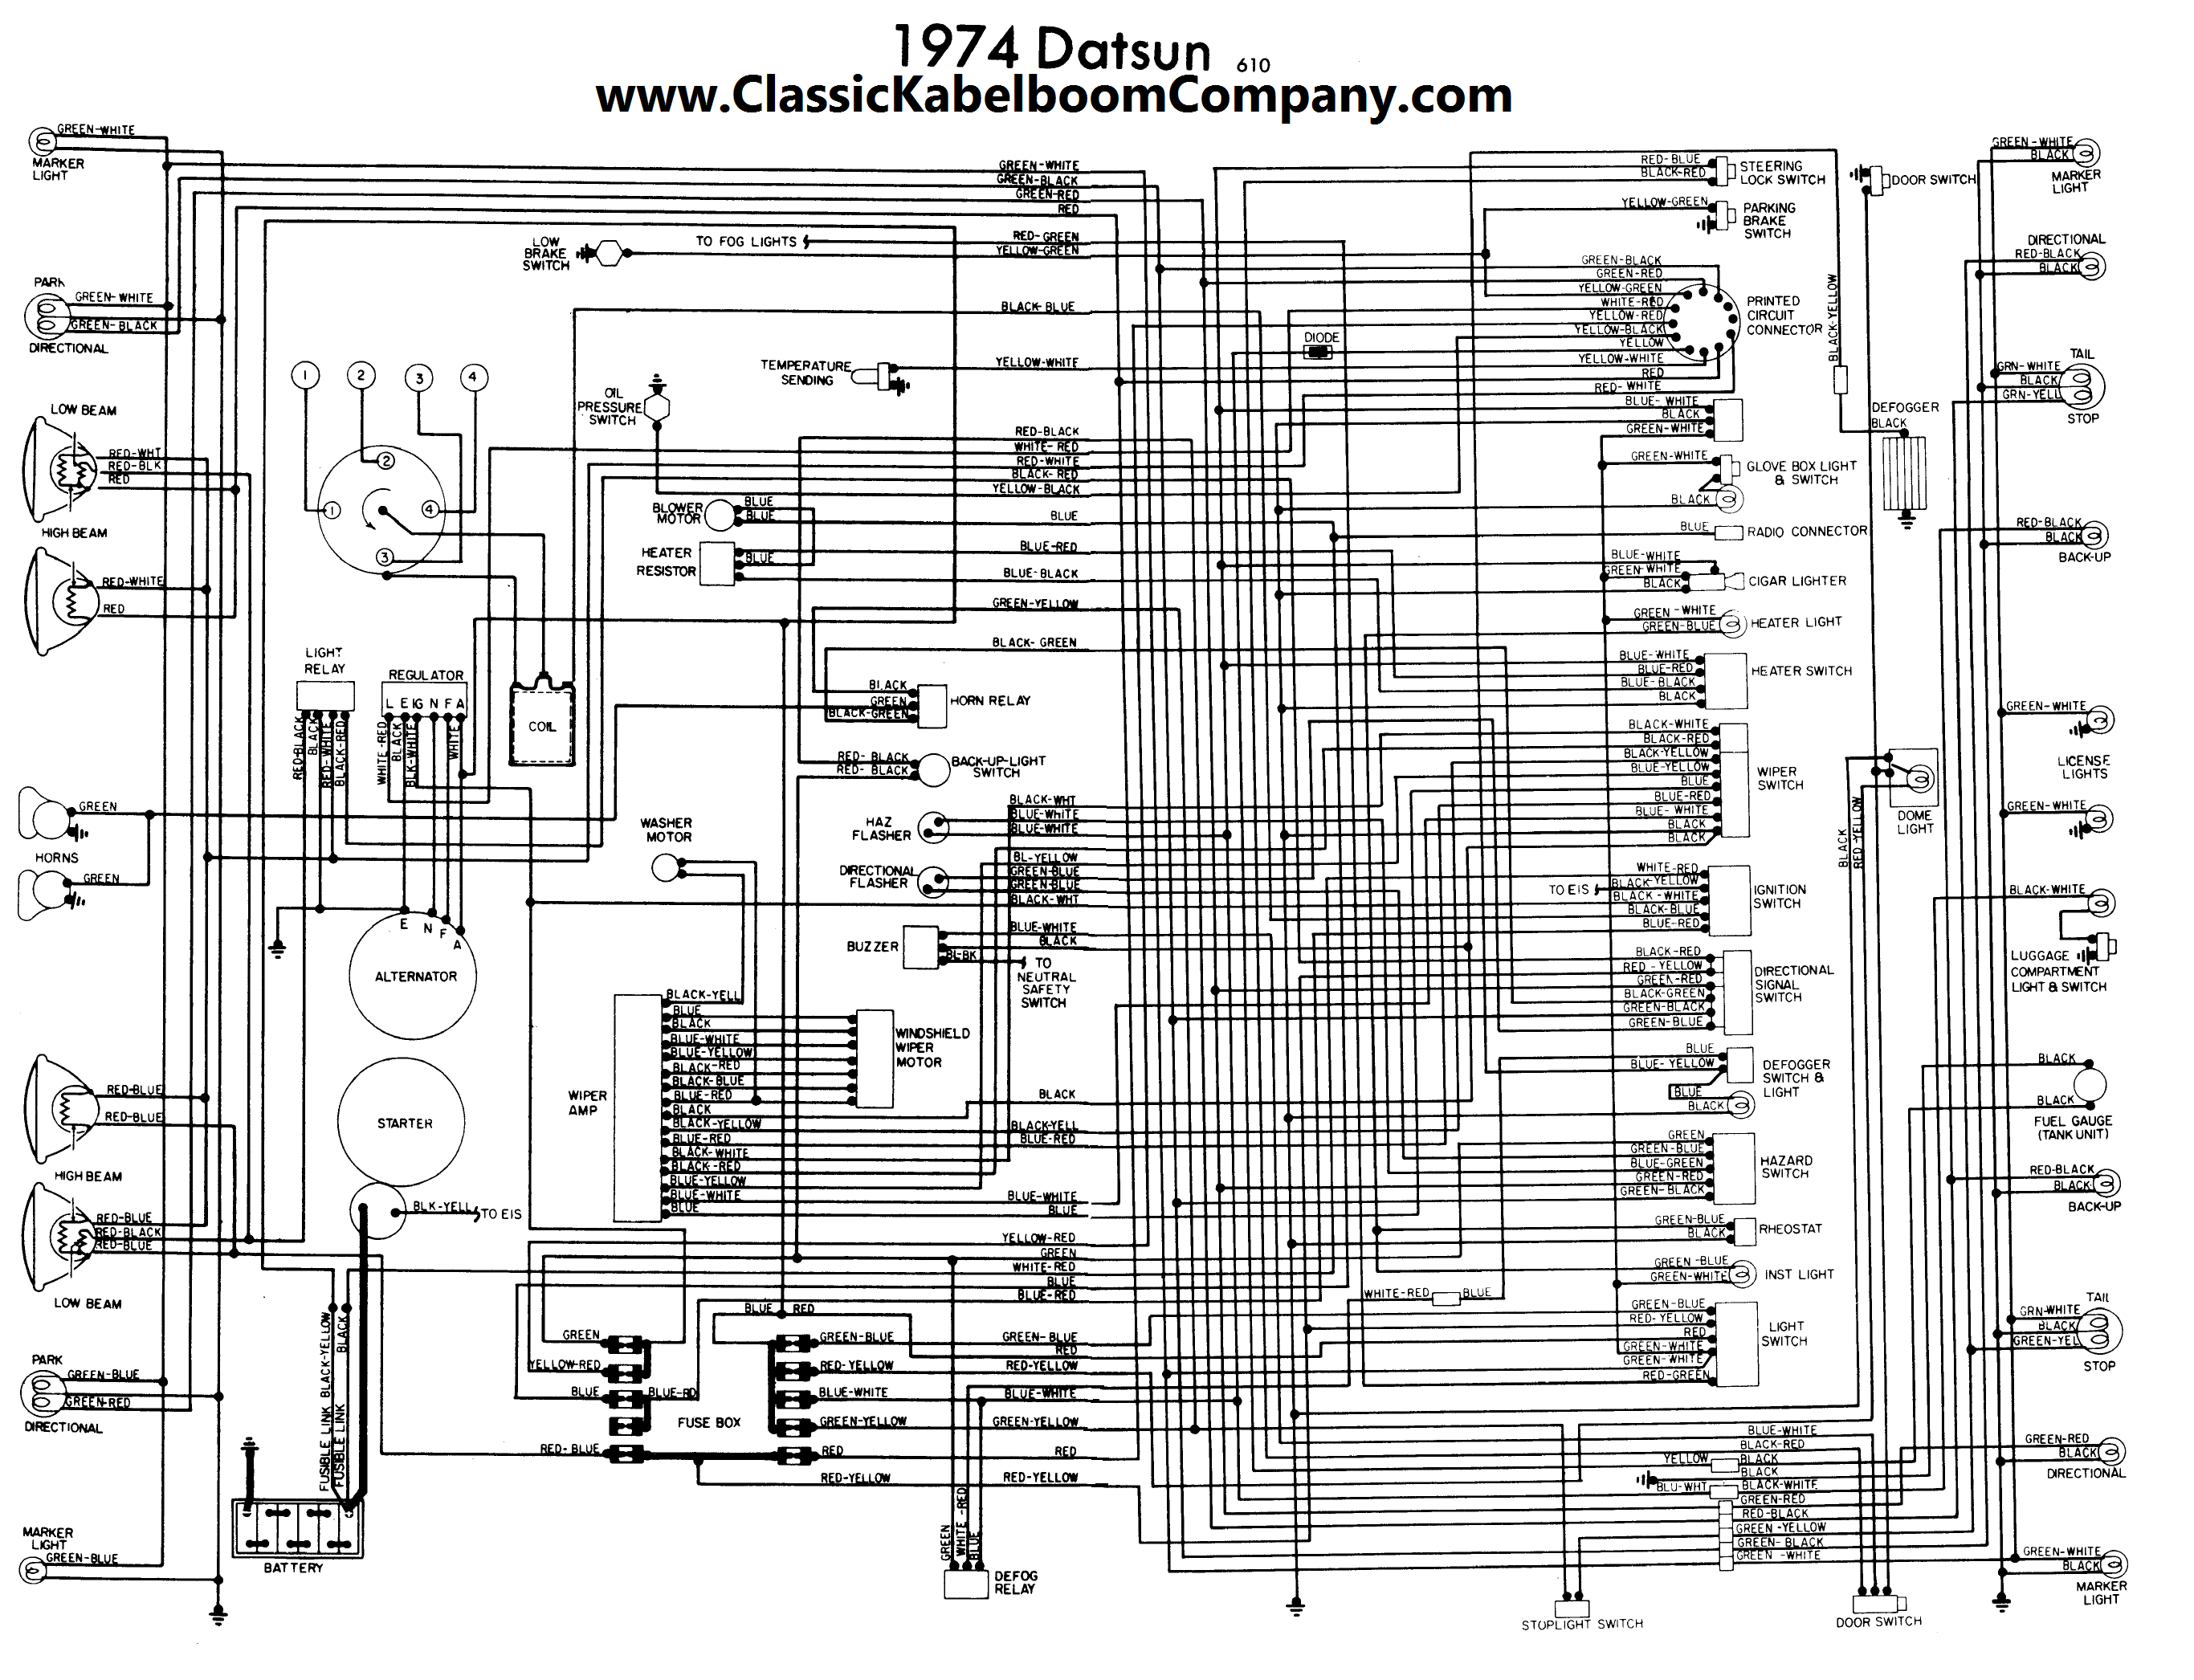 Luxury Wireandcabletogo Model - Electrical Circuit Diagram Ideas ...